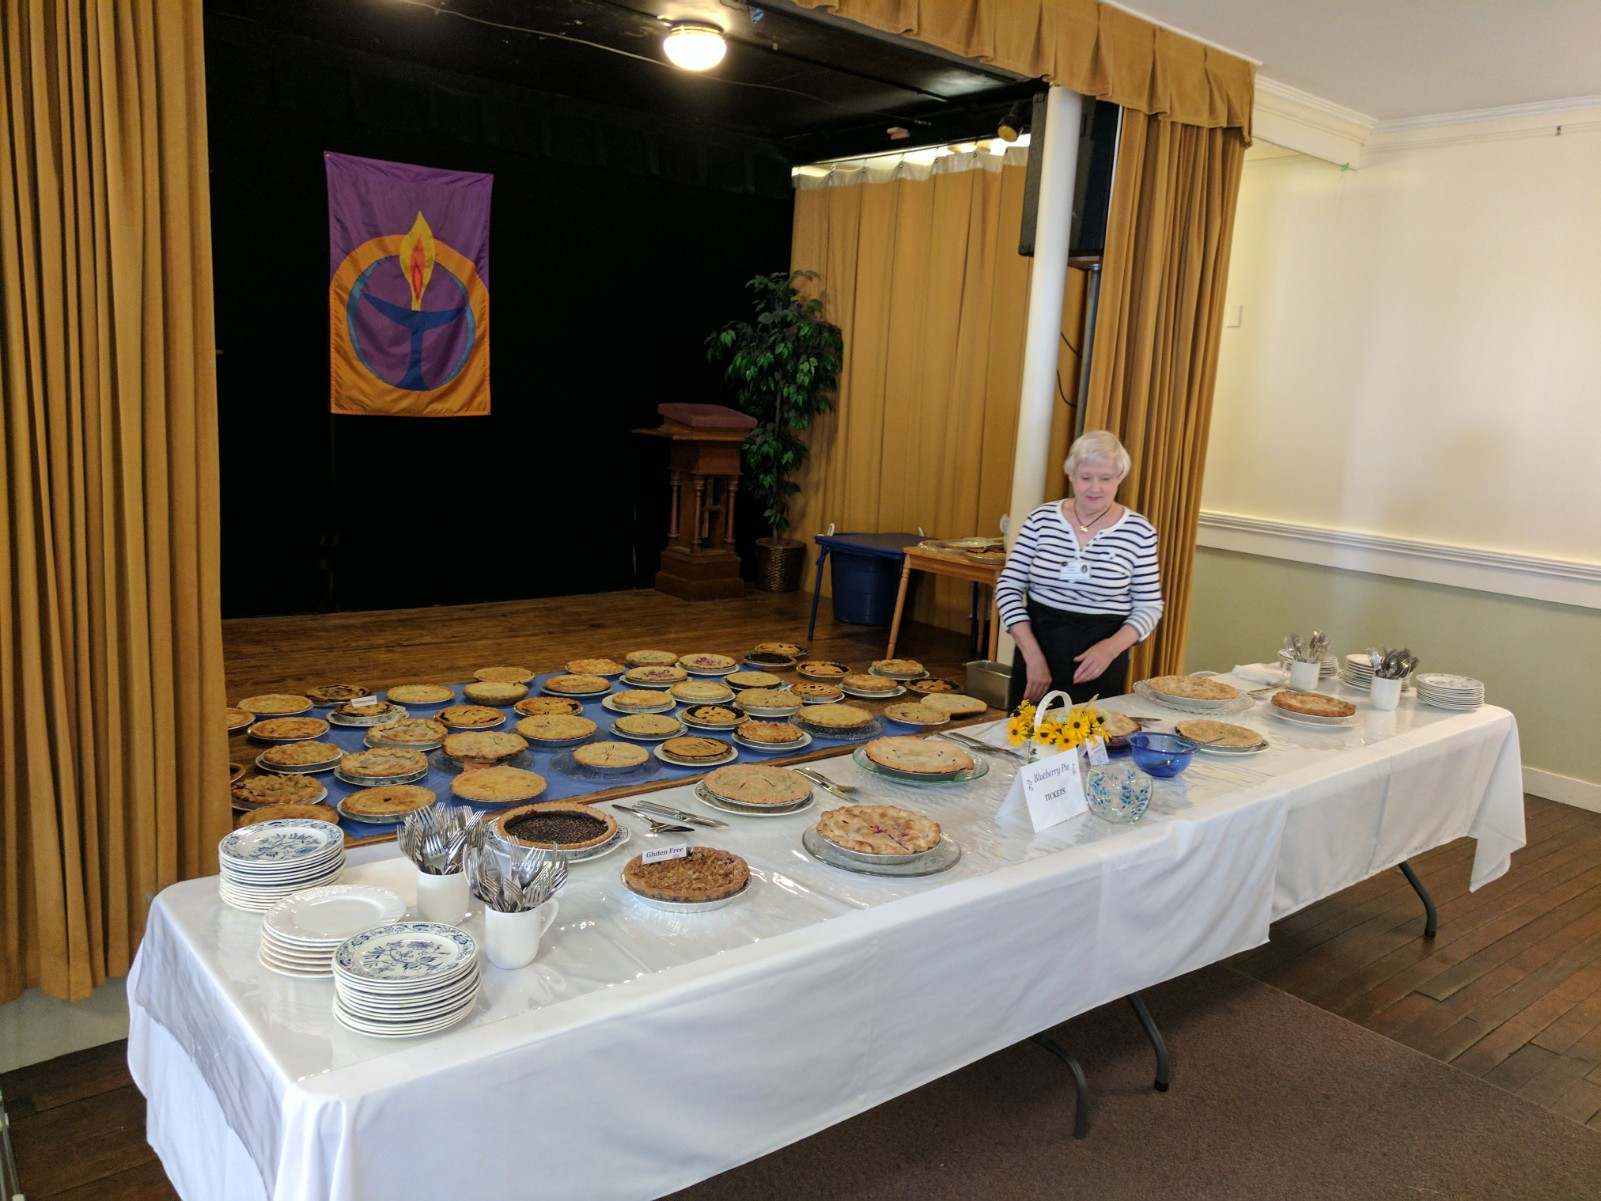 Festival organizer Susan Jack stands among dozens of blueberry pies baked by volunteers for the Blueberry Festival in Kennebunk on Saturday. RYDER SCHUMACHER/Journal Tribune